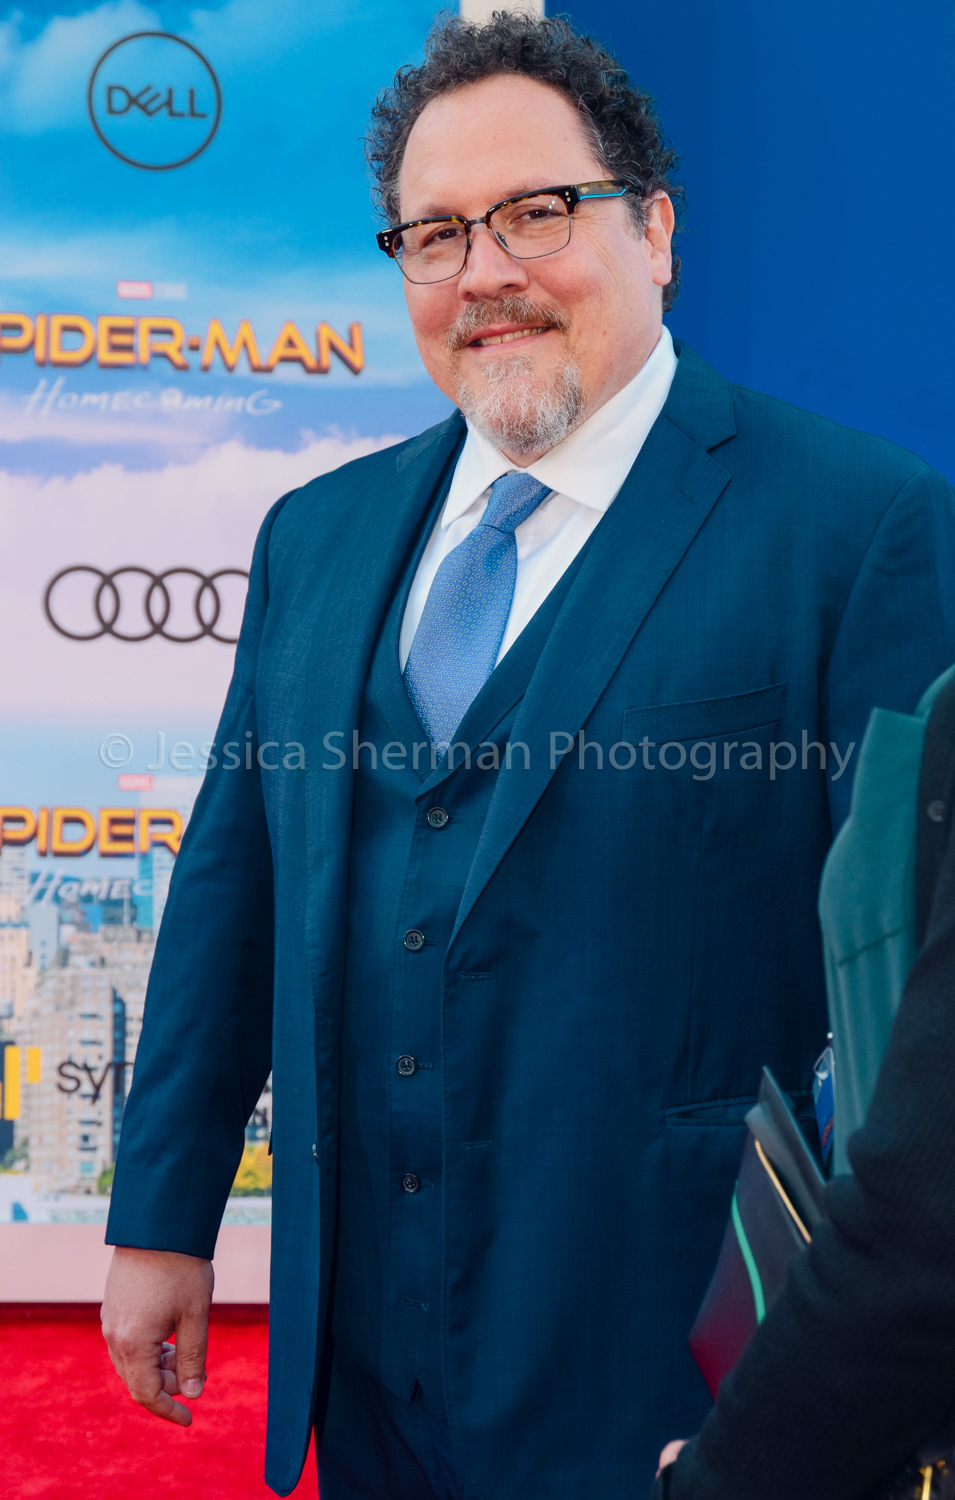 Jon-Favreau-web (1 of 1).jpg